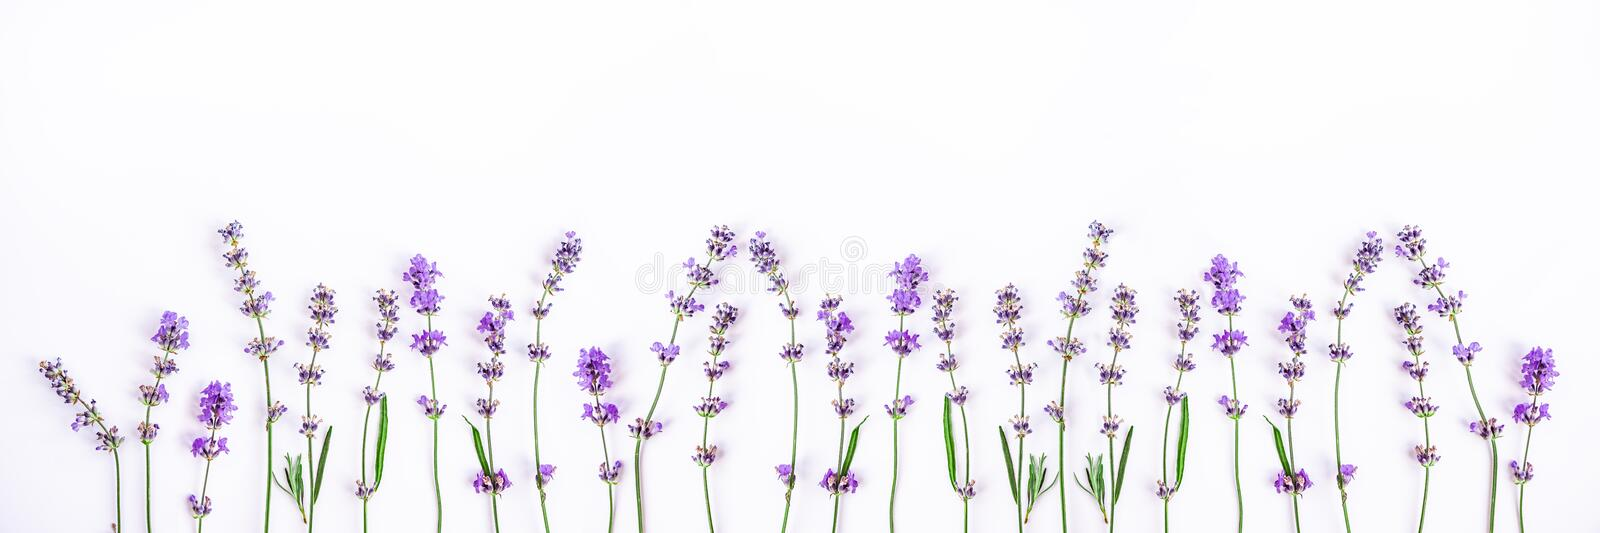 Fresh lavender flowers on a white background. Lavender flowers banner. Copy space. royalty free stock images